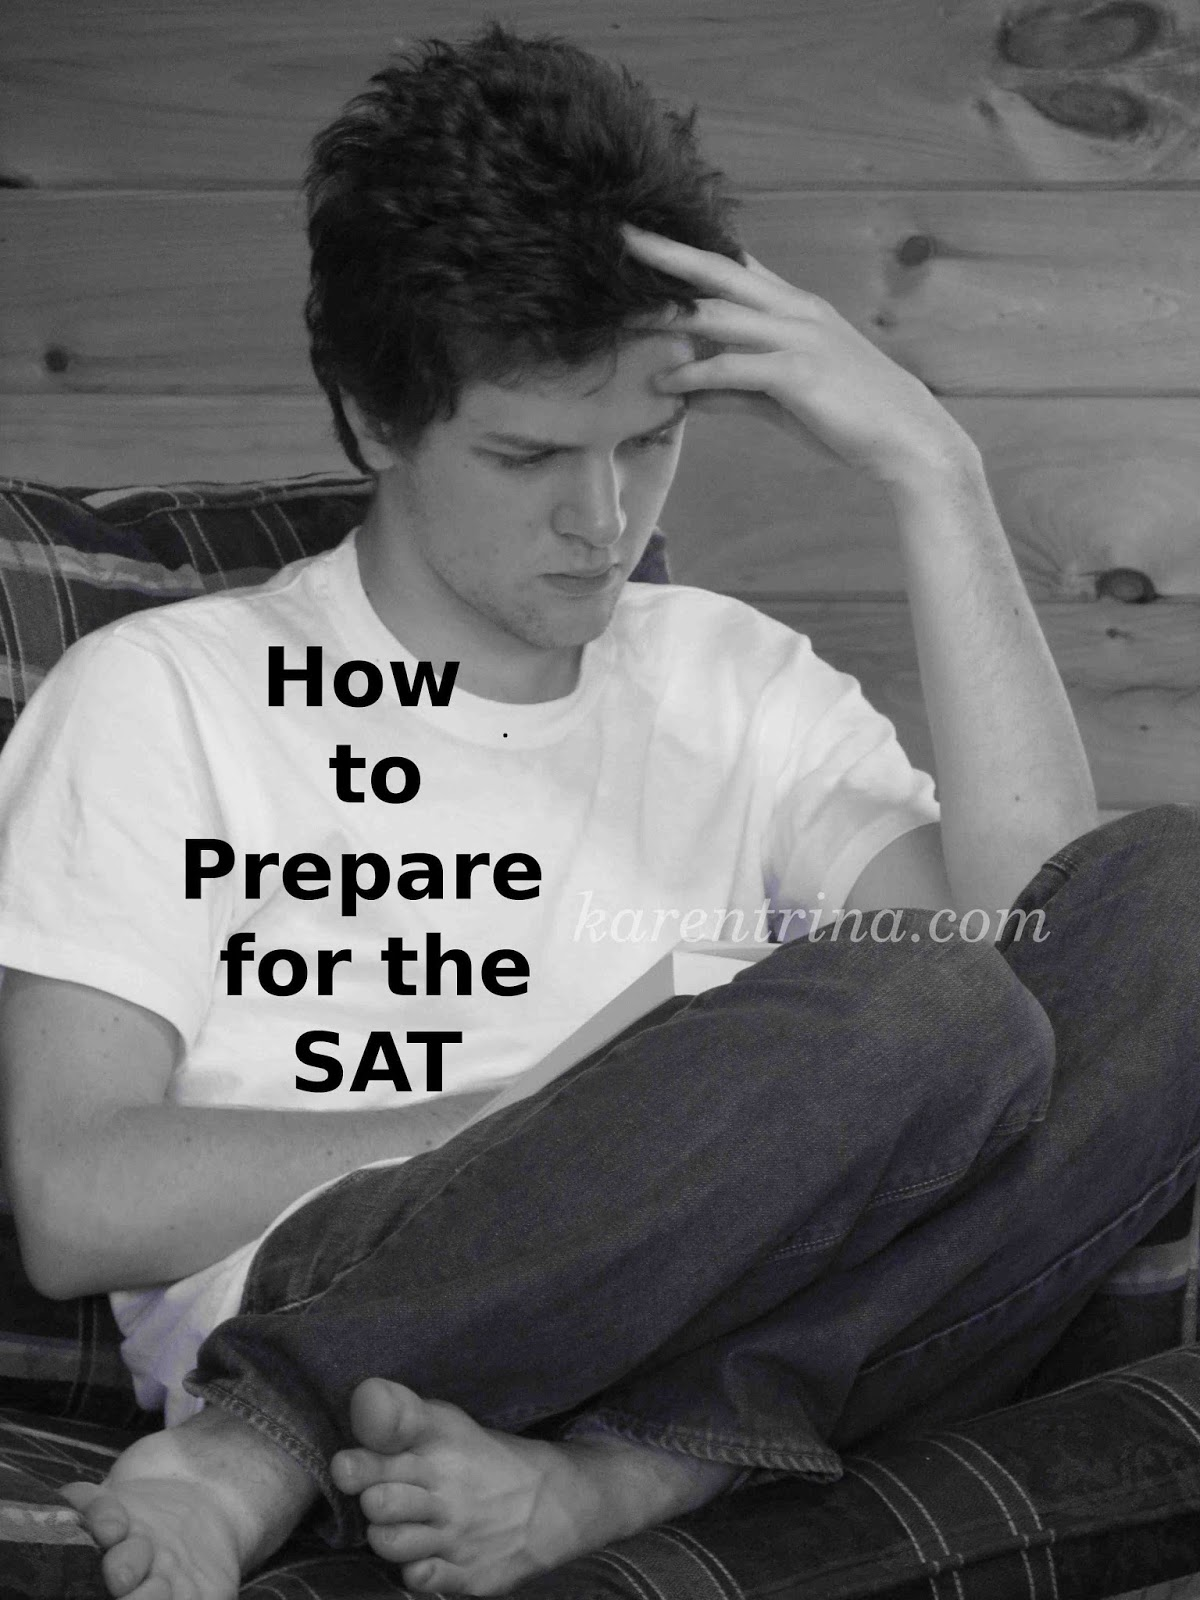 standardized test prep, preparing for SAT